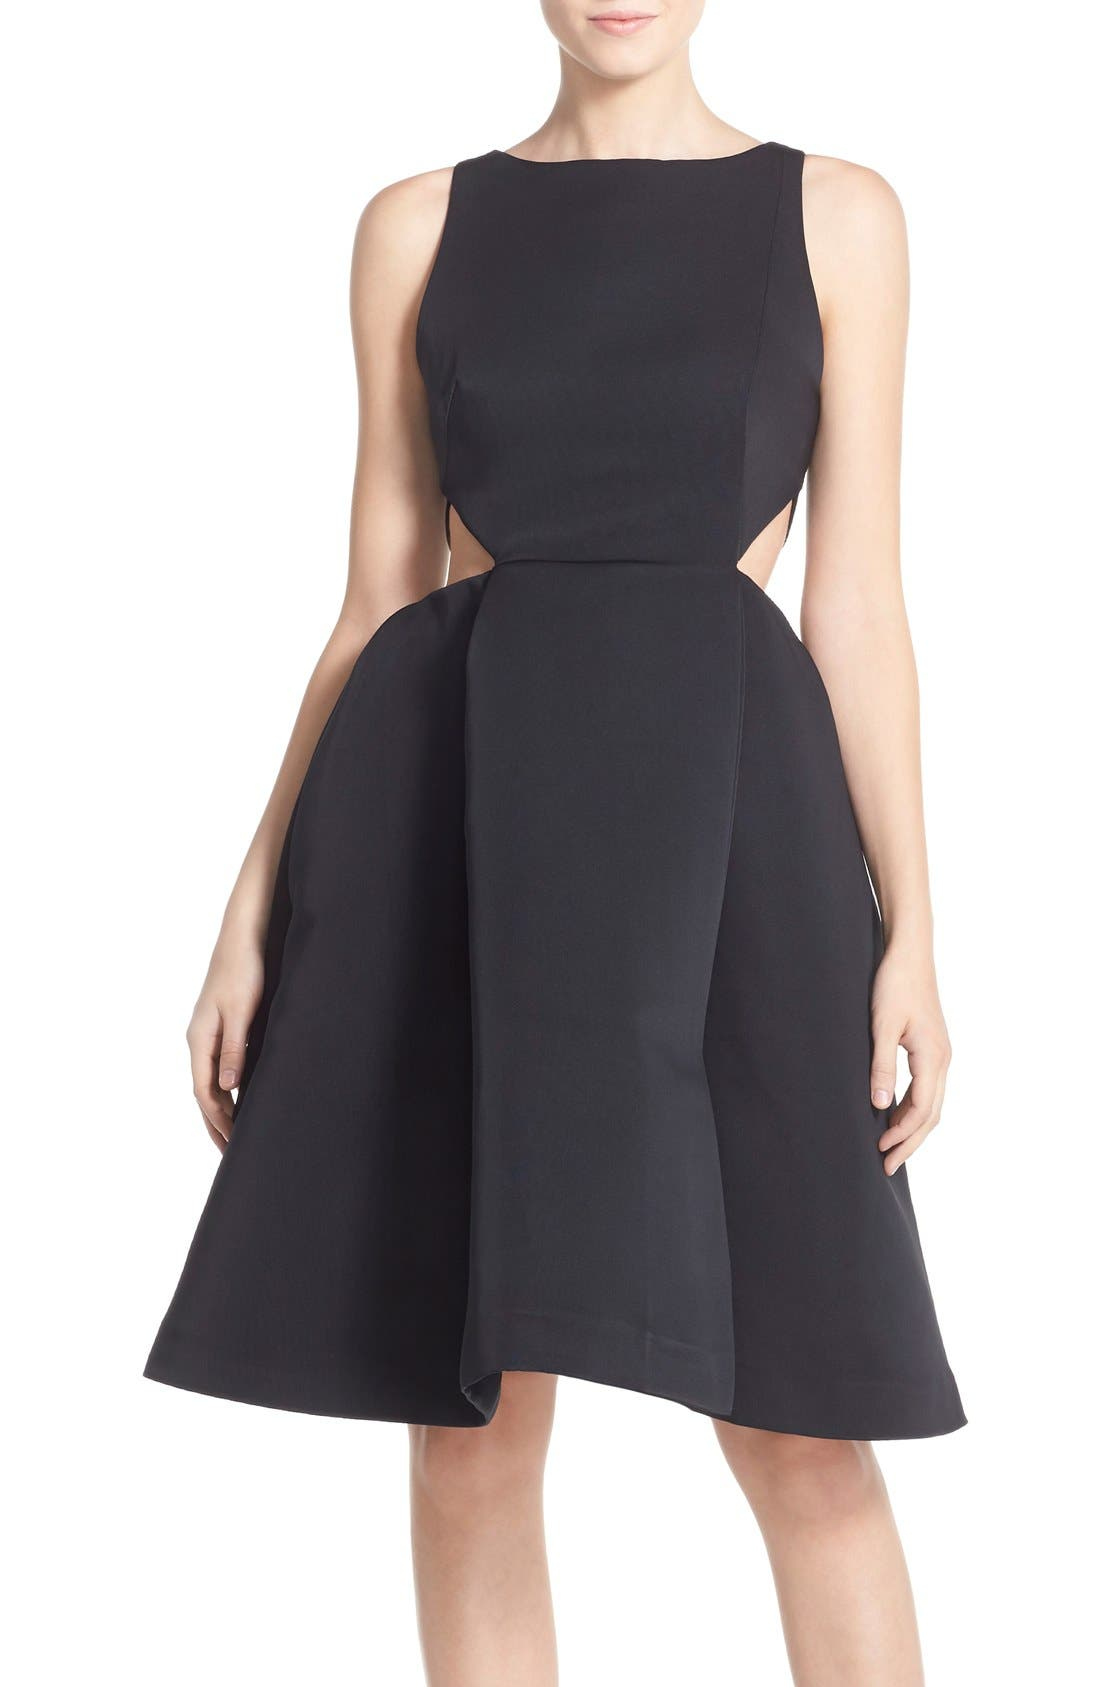 Alternate Image 1 Selected - Halston Heritage Side Cutout Bateau Neck Satin Faille Fit & Flare Dress